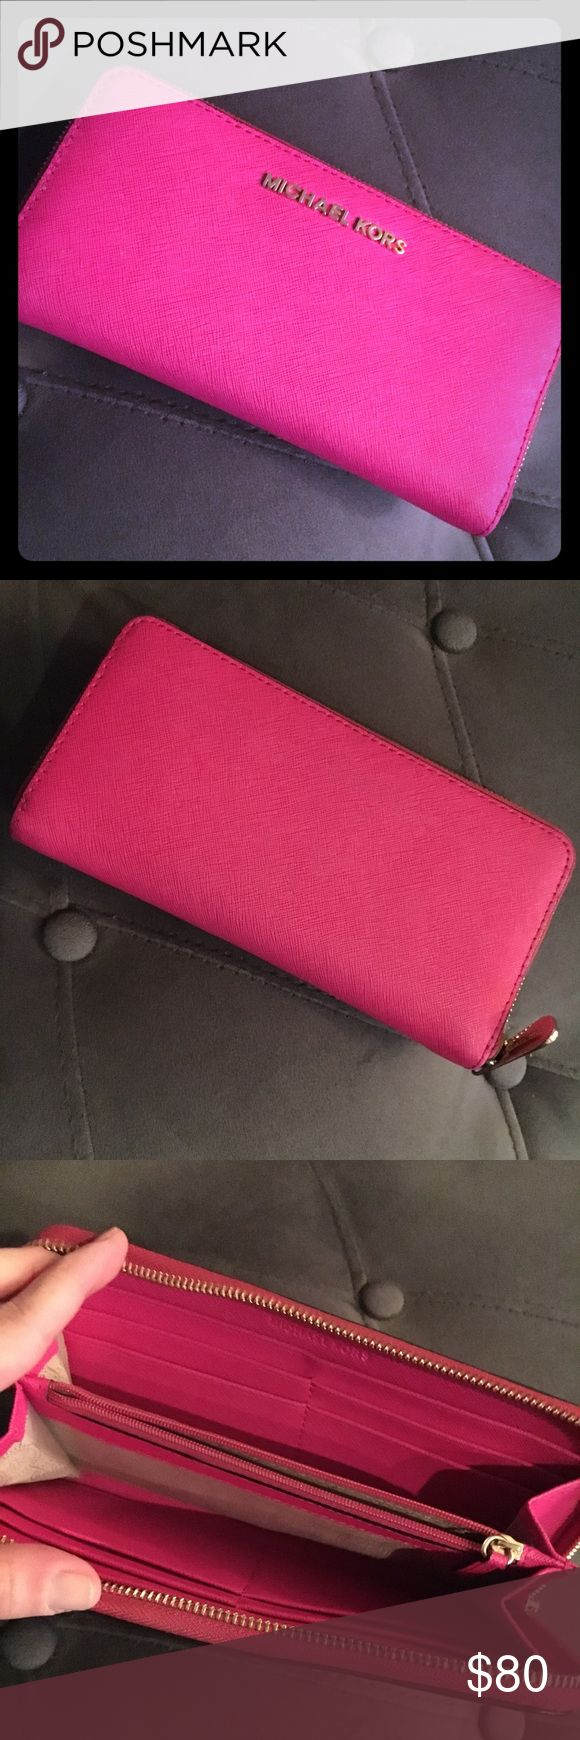 EUC Michael Kors Jet Set Wallet EUC Michael Kors Jet Set Wallet in PINK. Barely used, beautiful color! (Reasonable offers accepted!) MICHAEL Michael Kors Bags Wallets